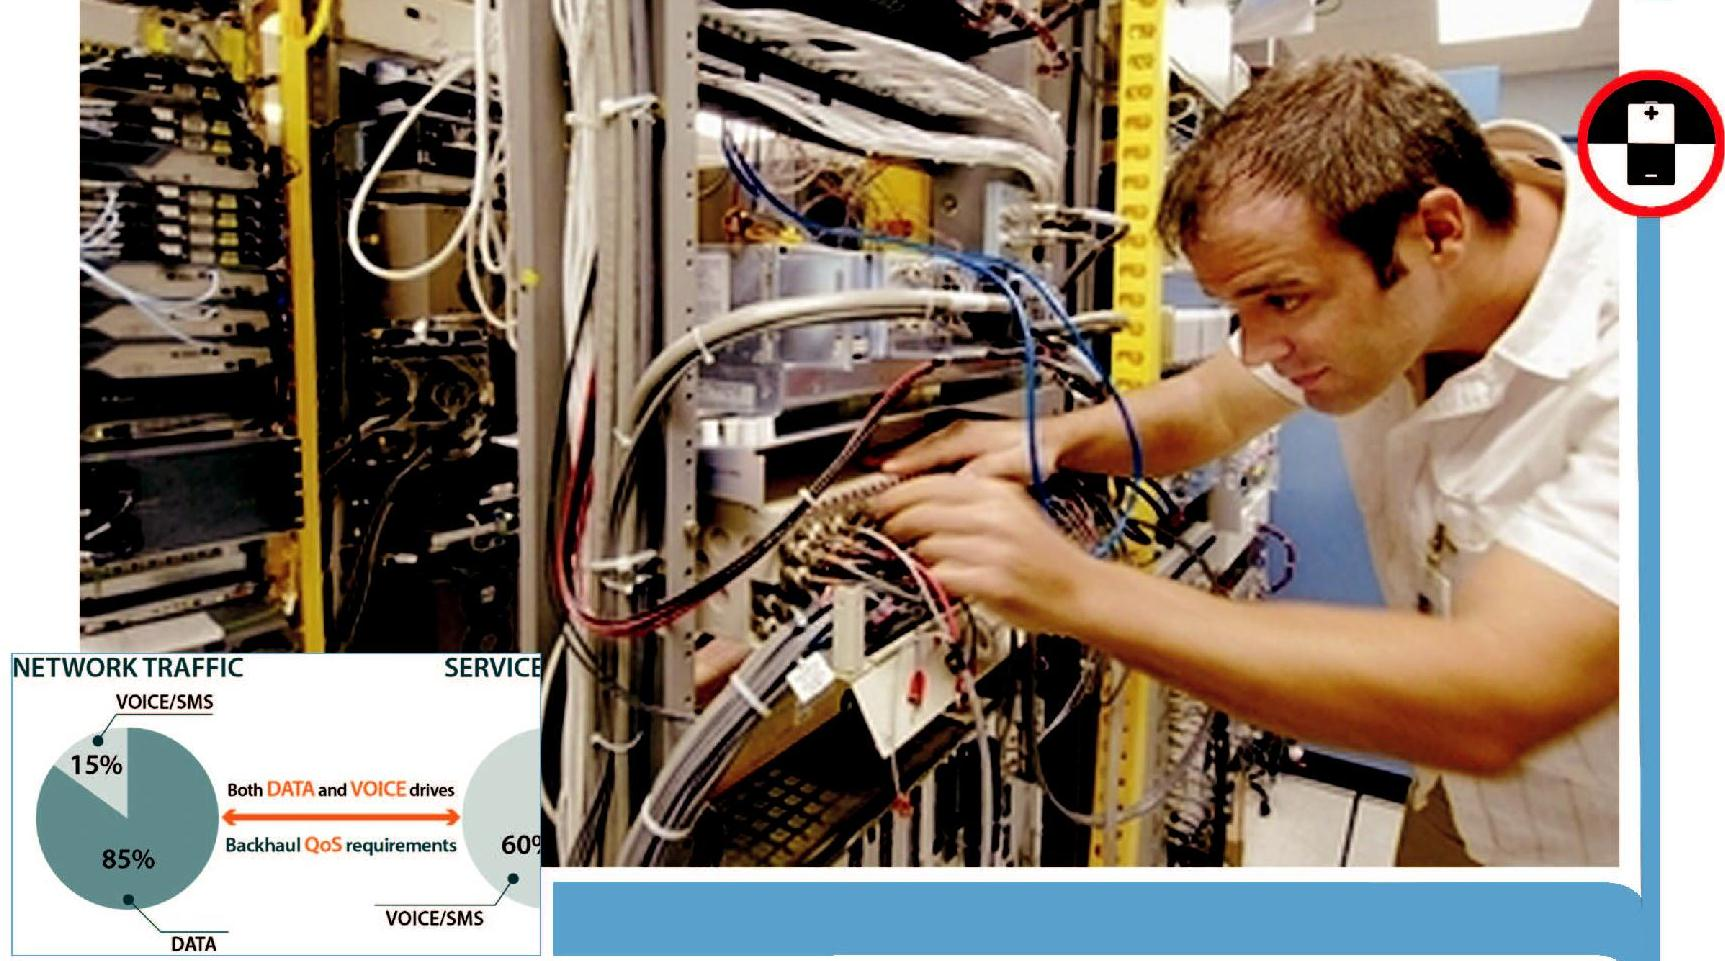 Broadband Management Supervisor: Manages the technicians to service the customer problems in time. The individual at work is responsible for supervising technician engaged in Broadband connetion and maintenance.